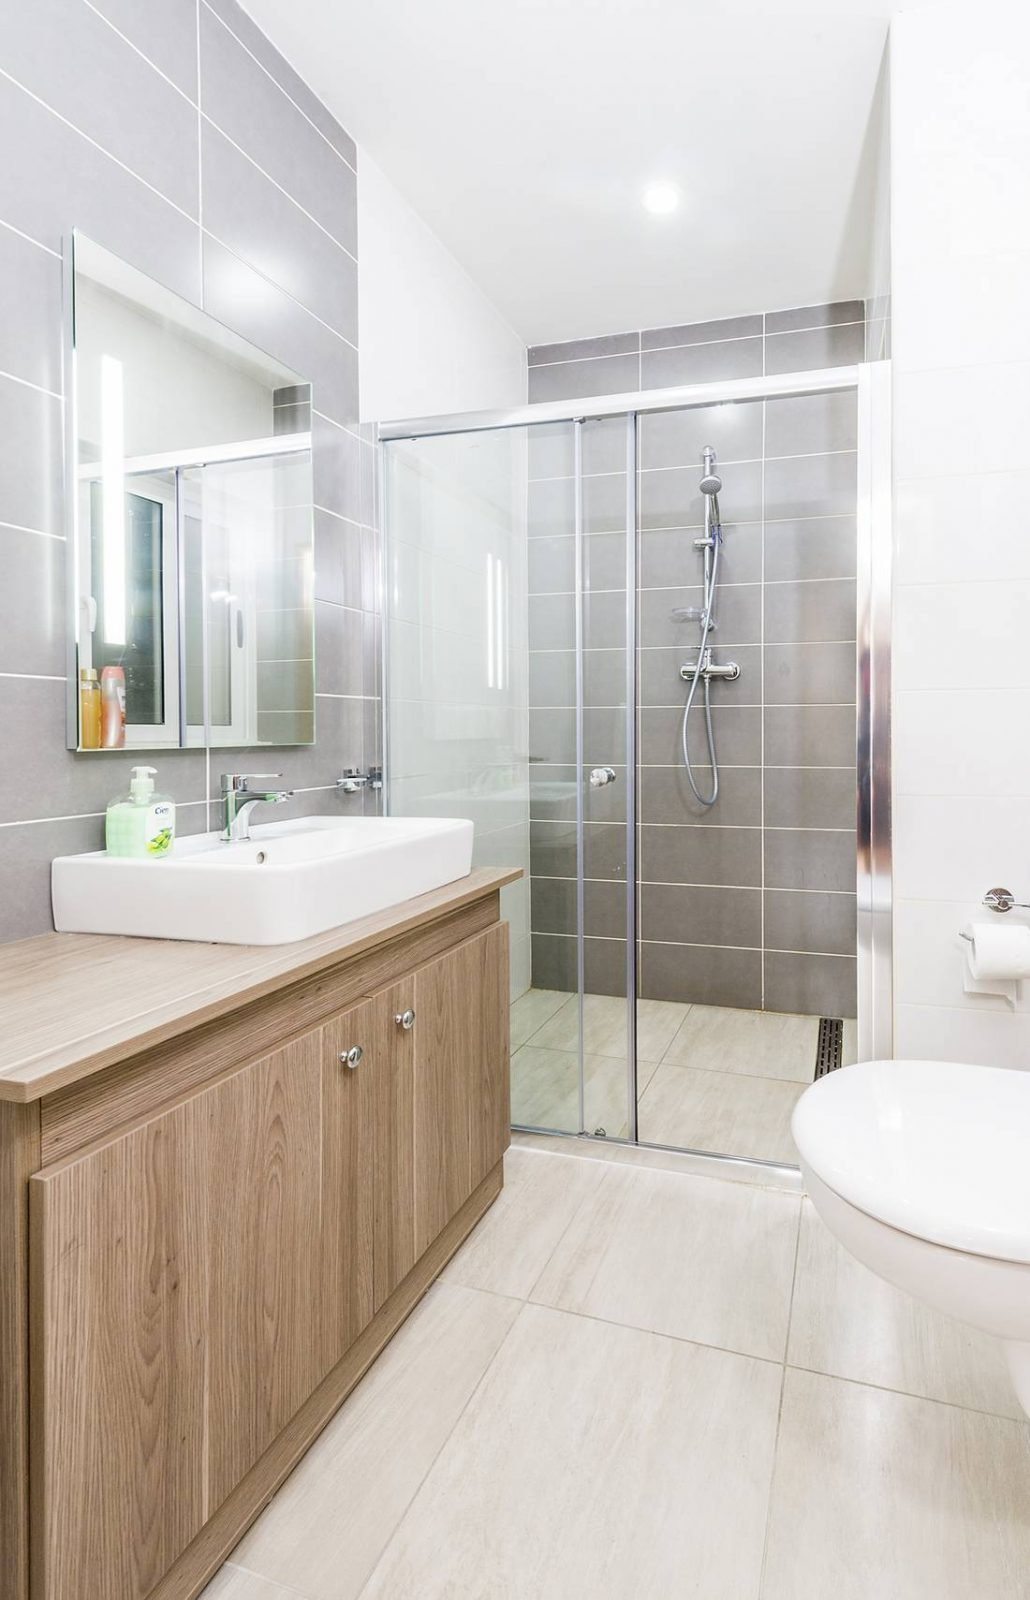 holidays-in-malta-guest-house-apartment-gzira-private-bathroom-of-ensuite-room_1